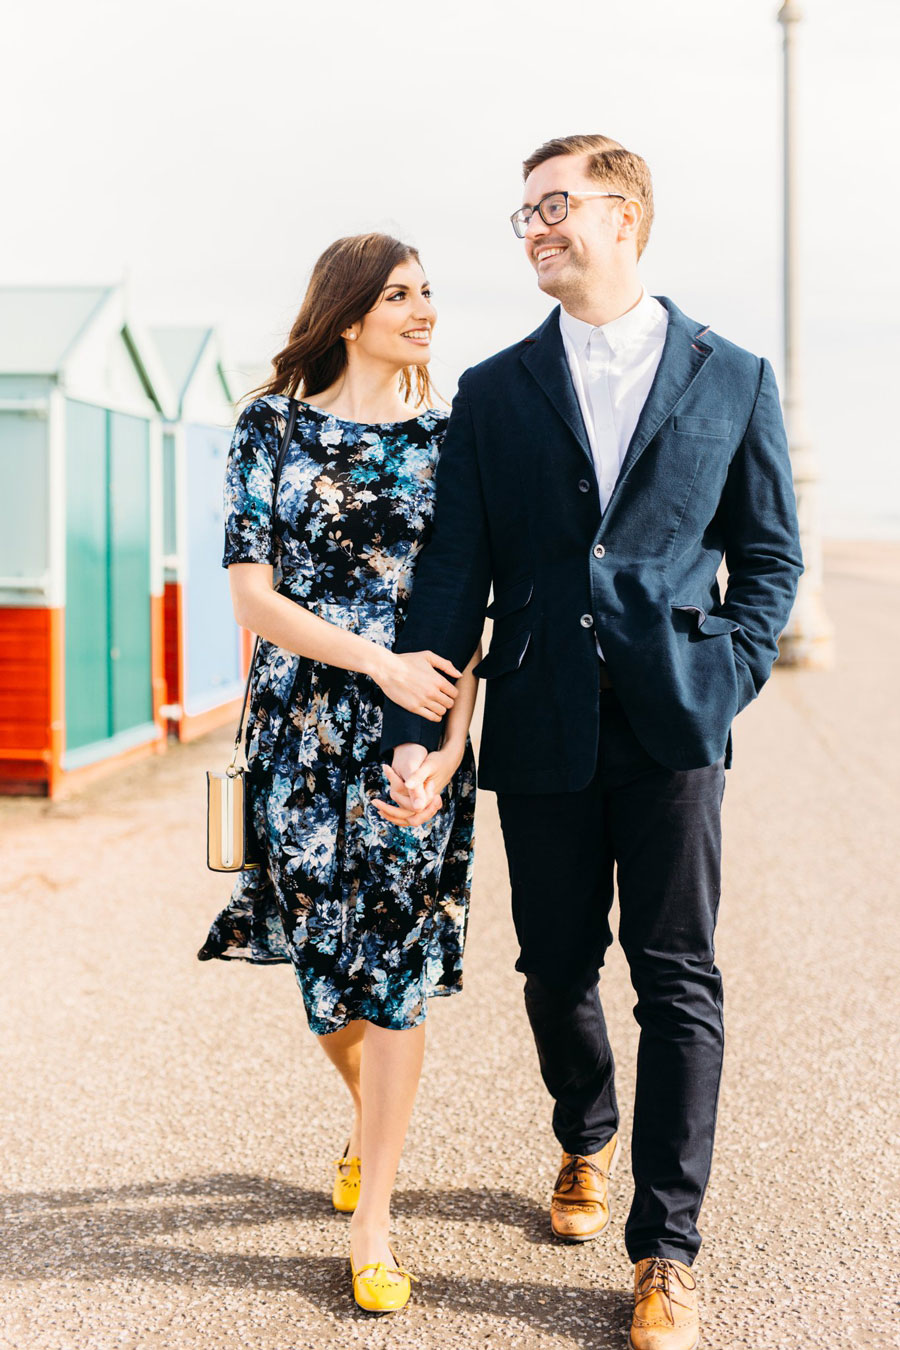 Shoreham Beach & Brighton Bandstand Engagement- Mike & Amy0017